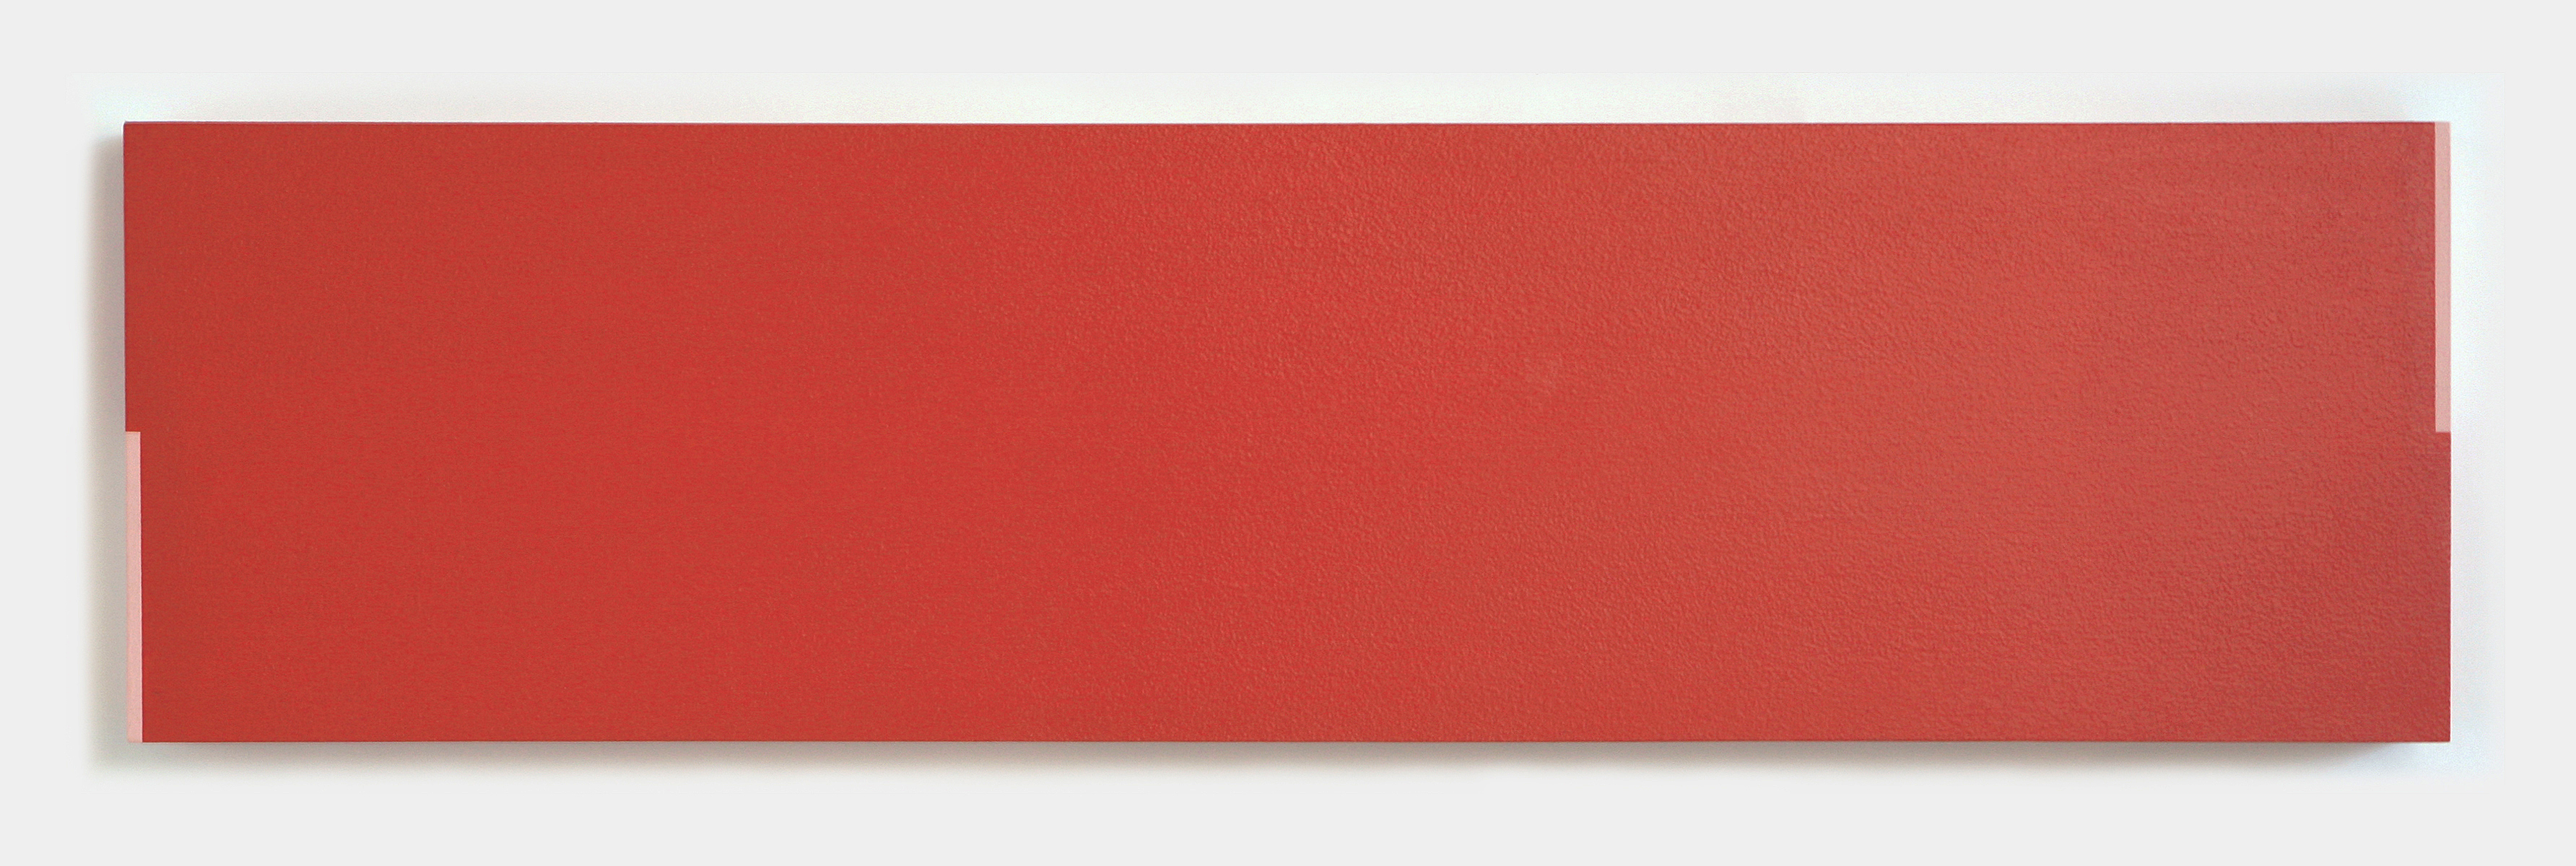 A long rectangular red painting with thin pink rectangles painted on two corners.